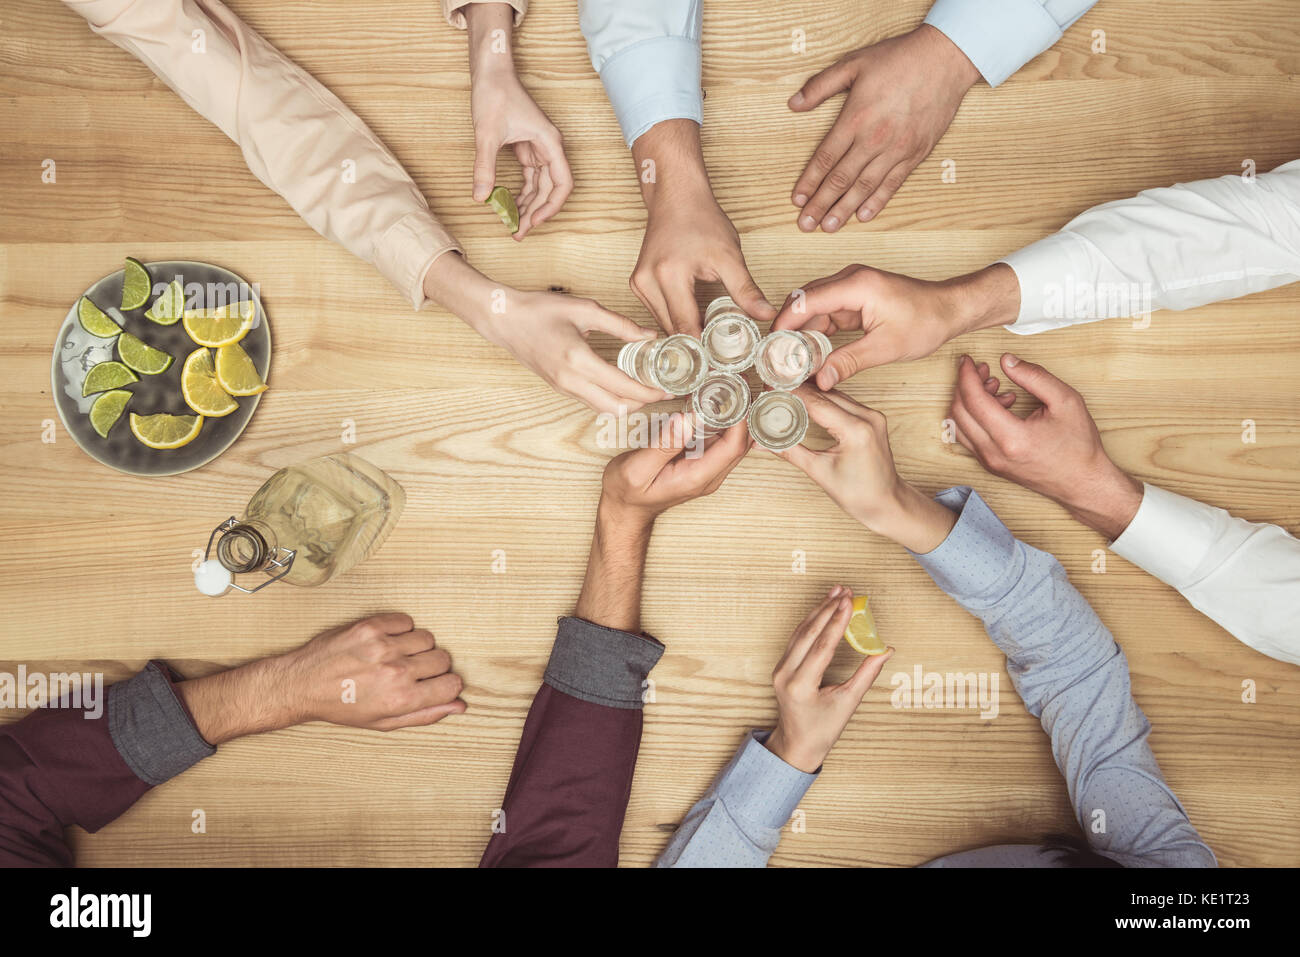 top view of friends hands with tequila shots on wooden tabletop  - Stock Image